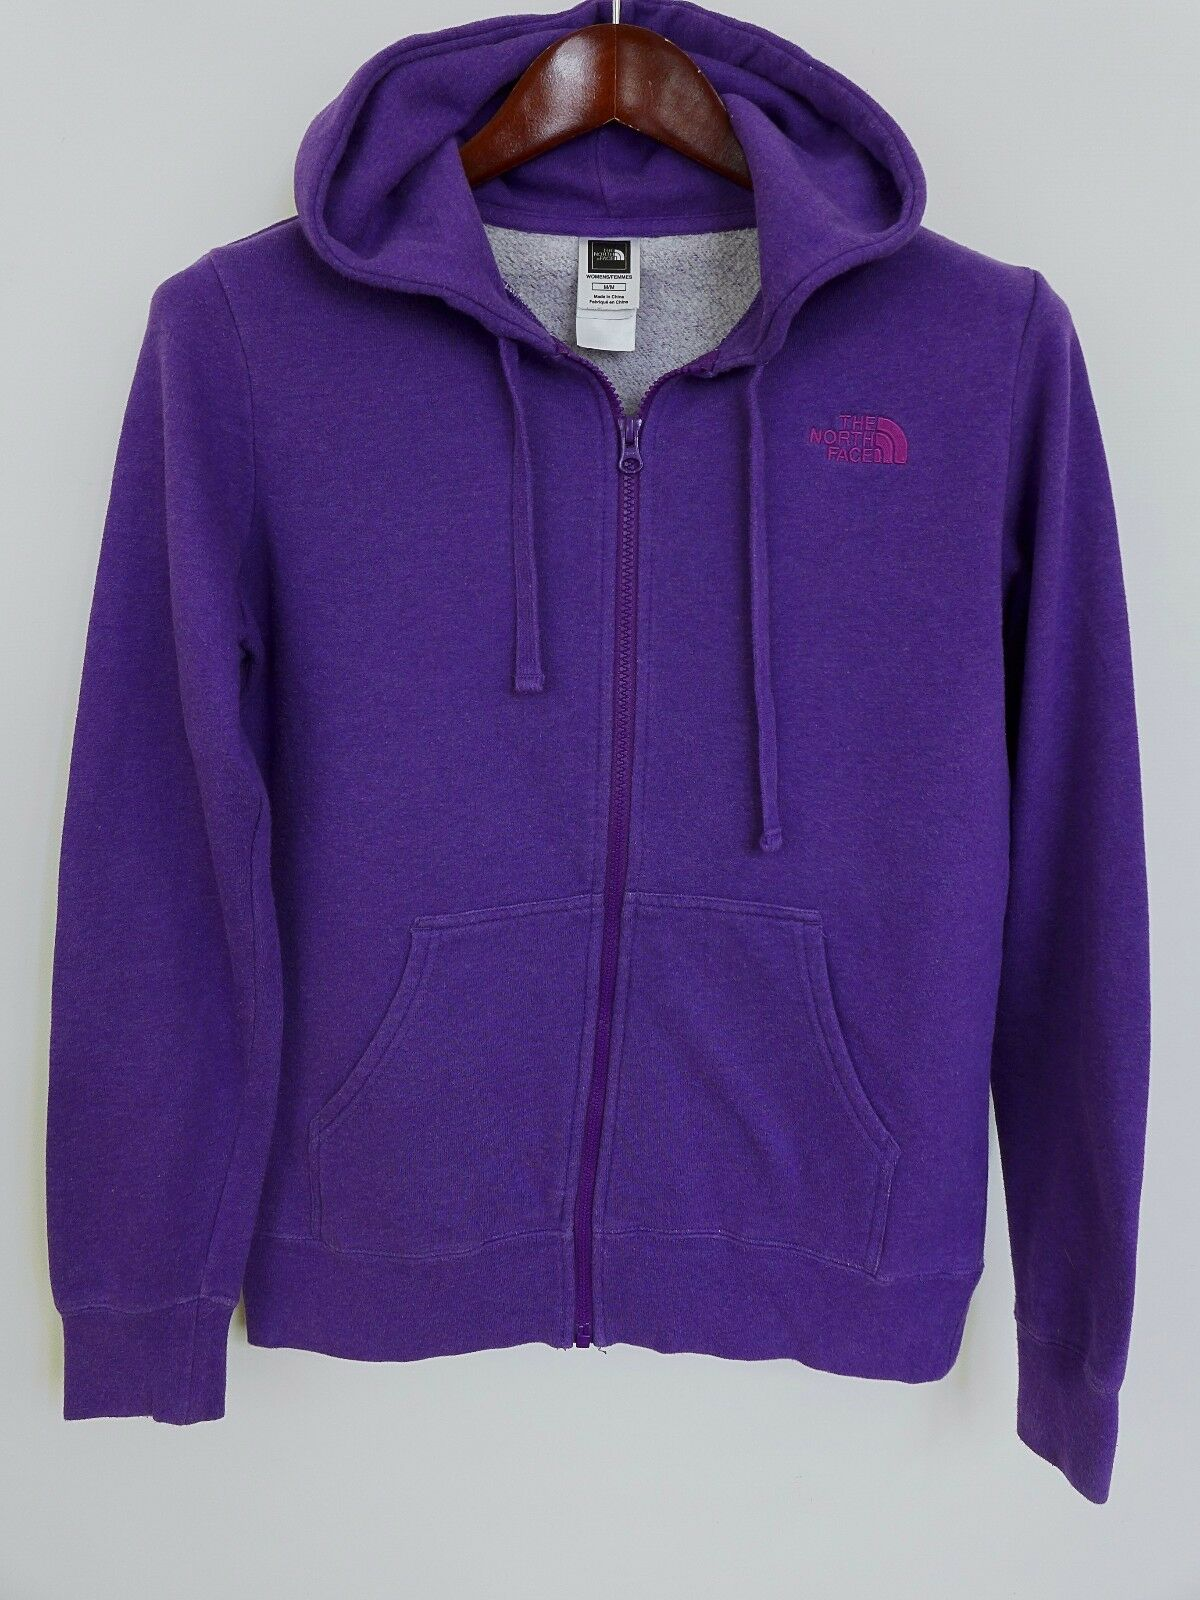 XBM281 Women Women Women The North Face Purple Zip Front Hooded Hoodie Size M 5f0d91